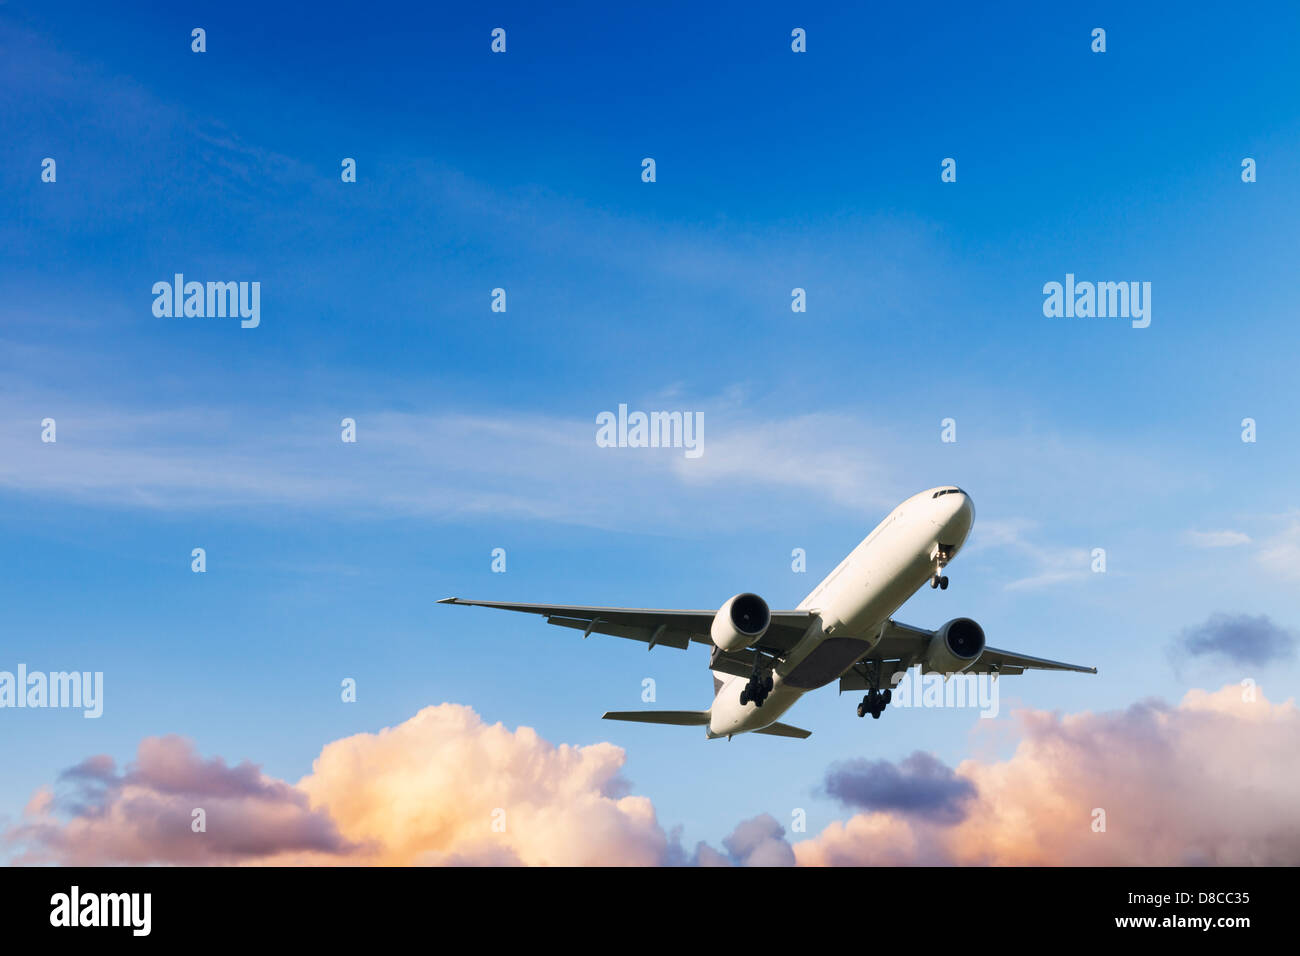 Plane - Boeing 777 coming in to land at sunset. - Stock Image